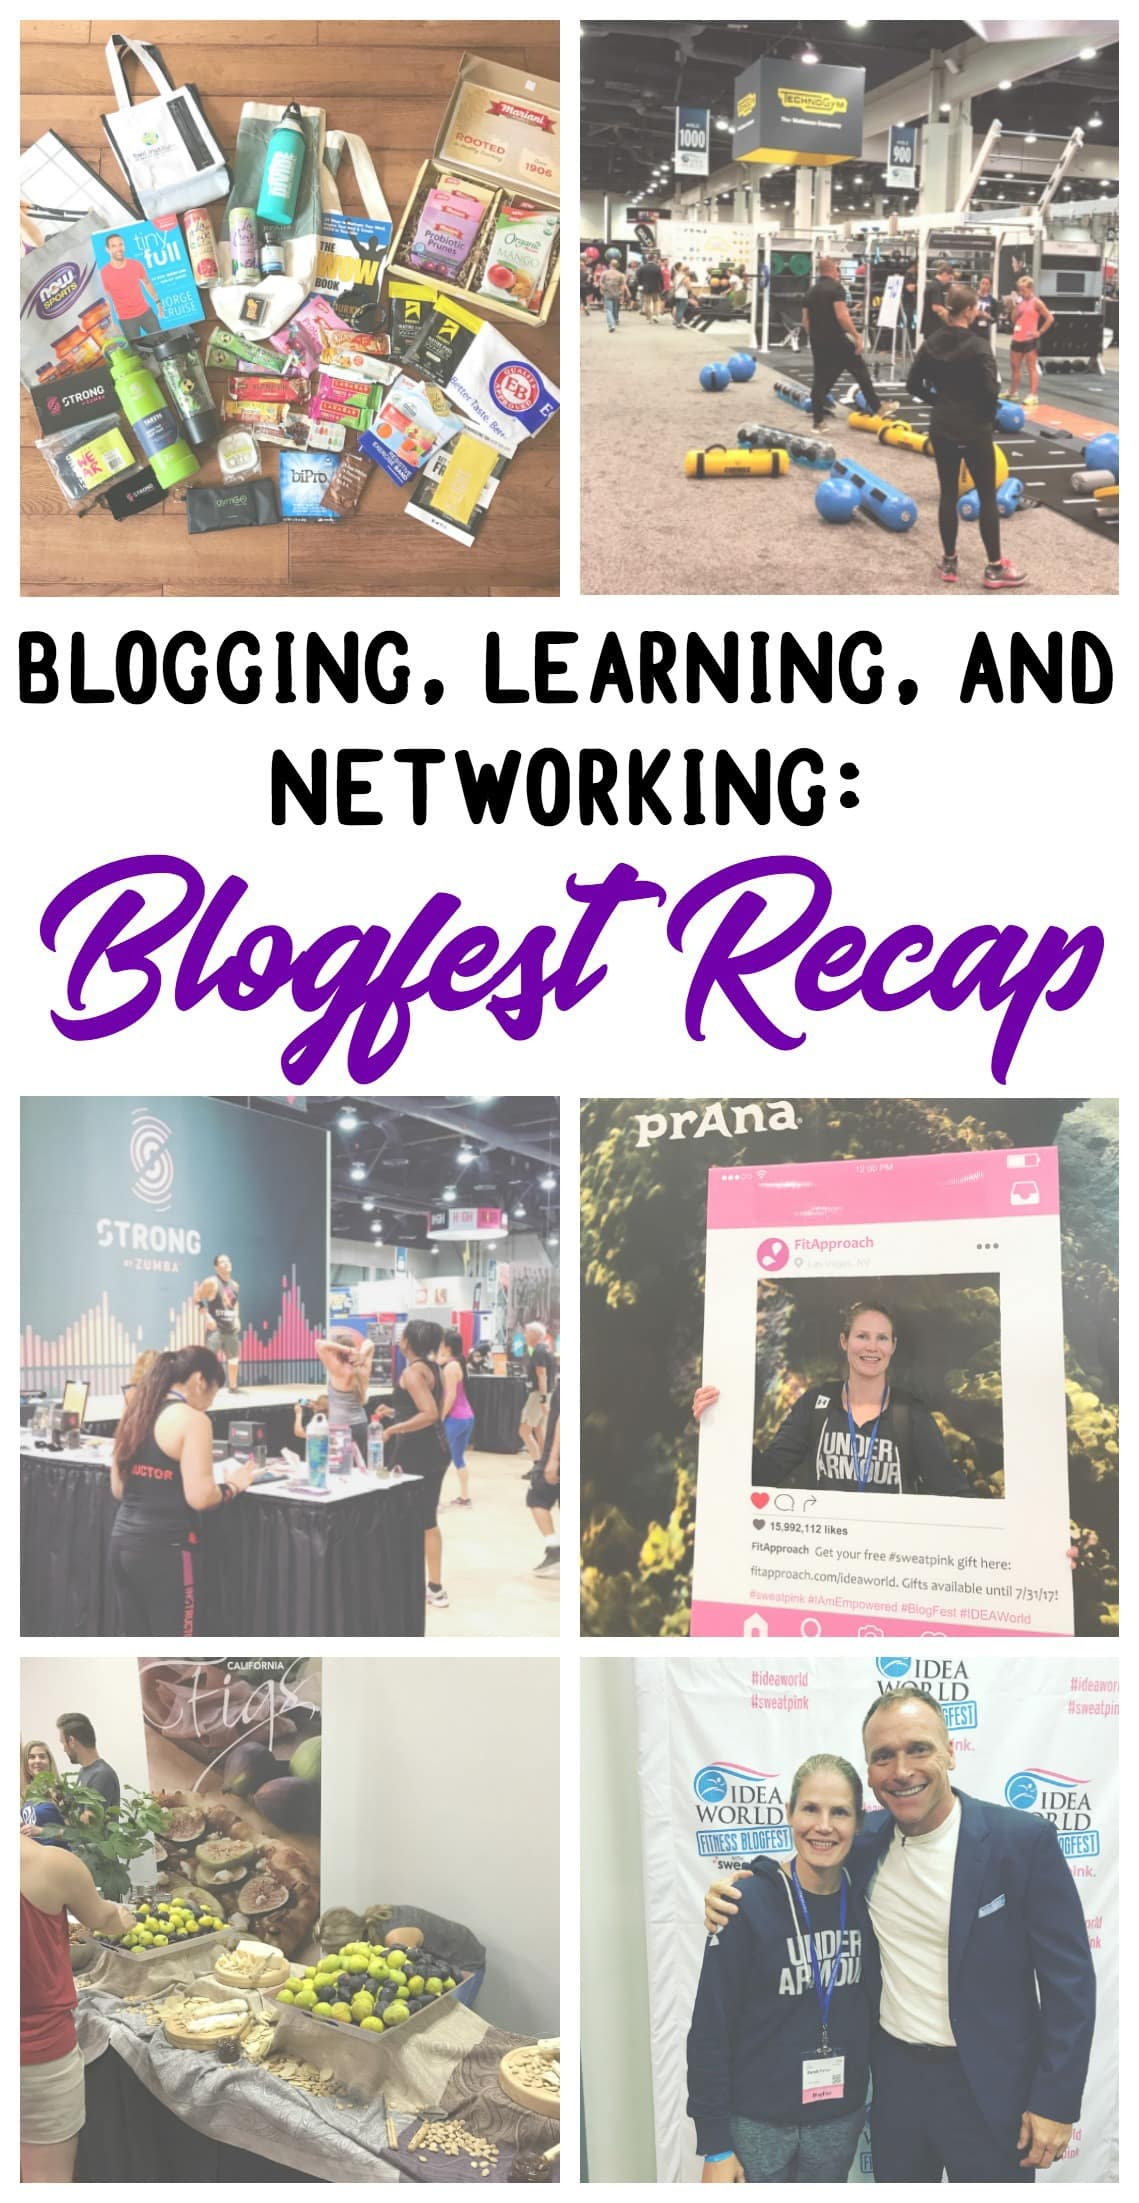 Want to know what it's like to go to Blogfest? Here's my recap of this year's Blogfest in Las Vegas!Lots of blogging, learning, and networking with great brands and blogging friends - @TheFitCookie